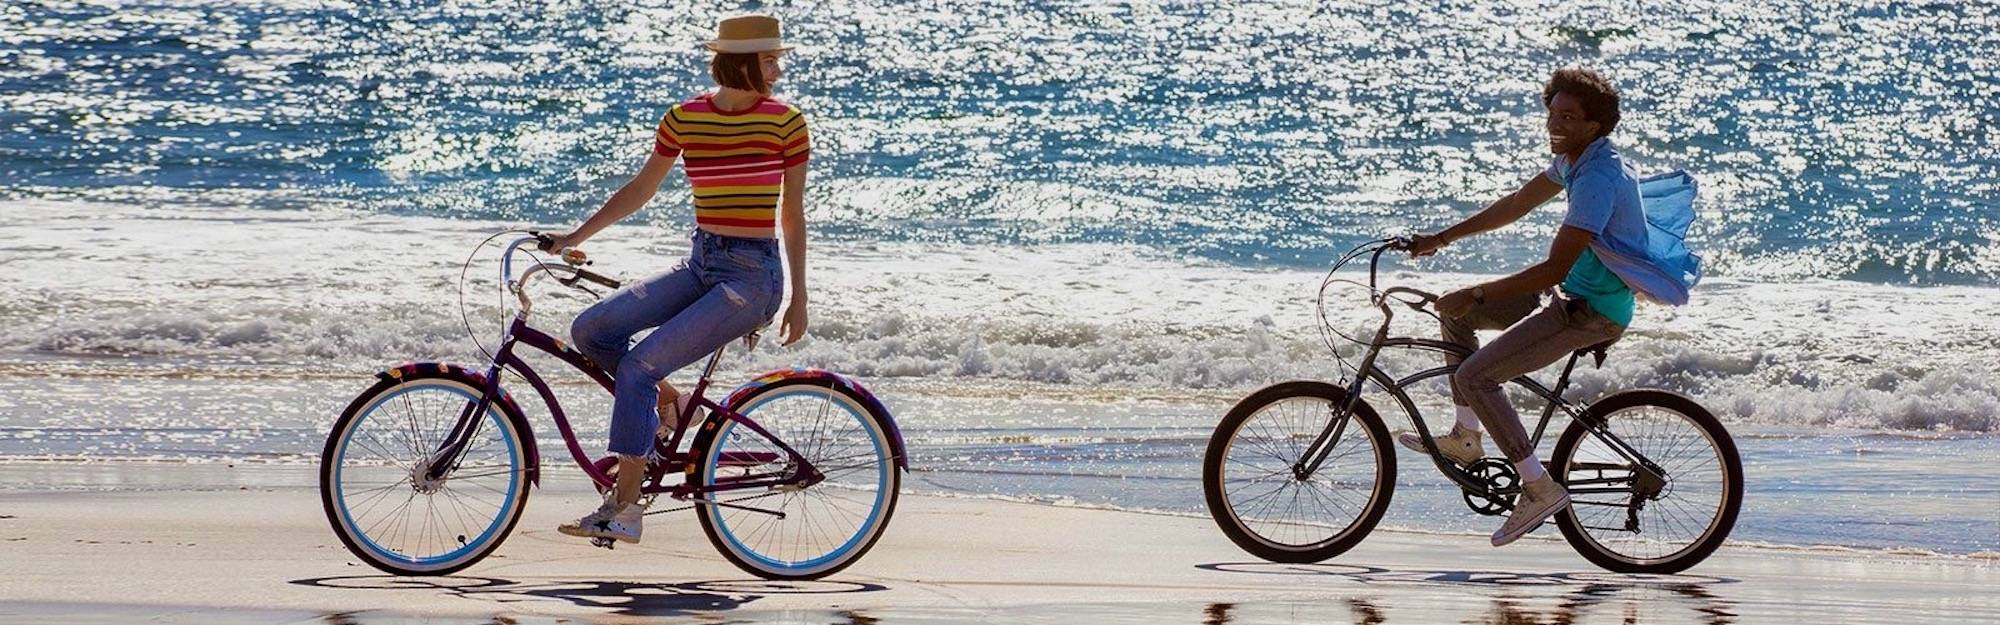 Electra cruiser bikes are a great for comfort and fun.